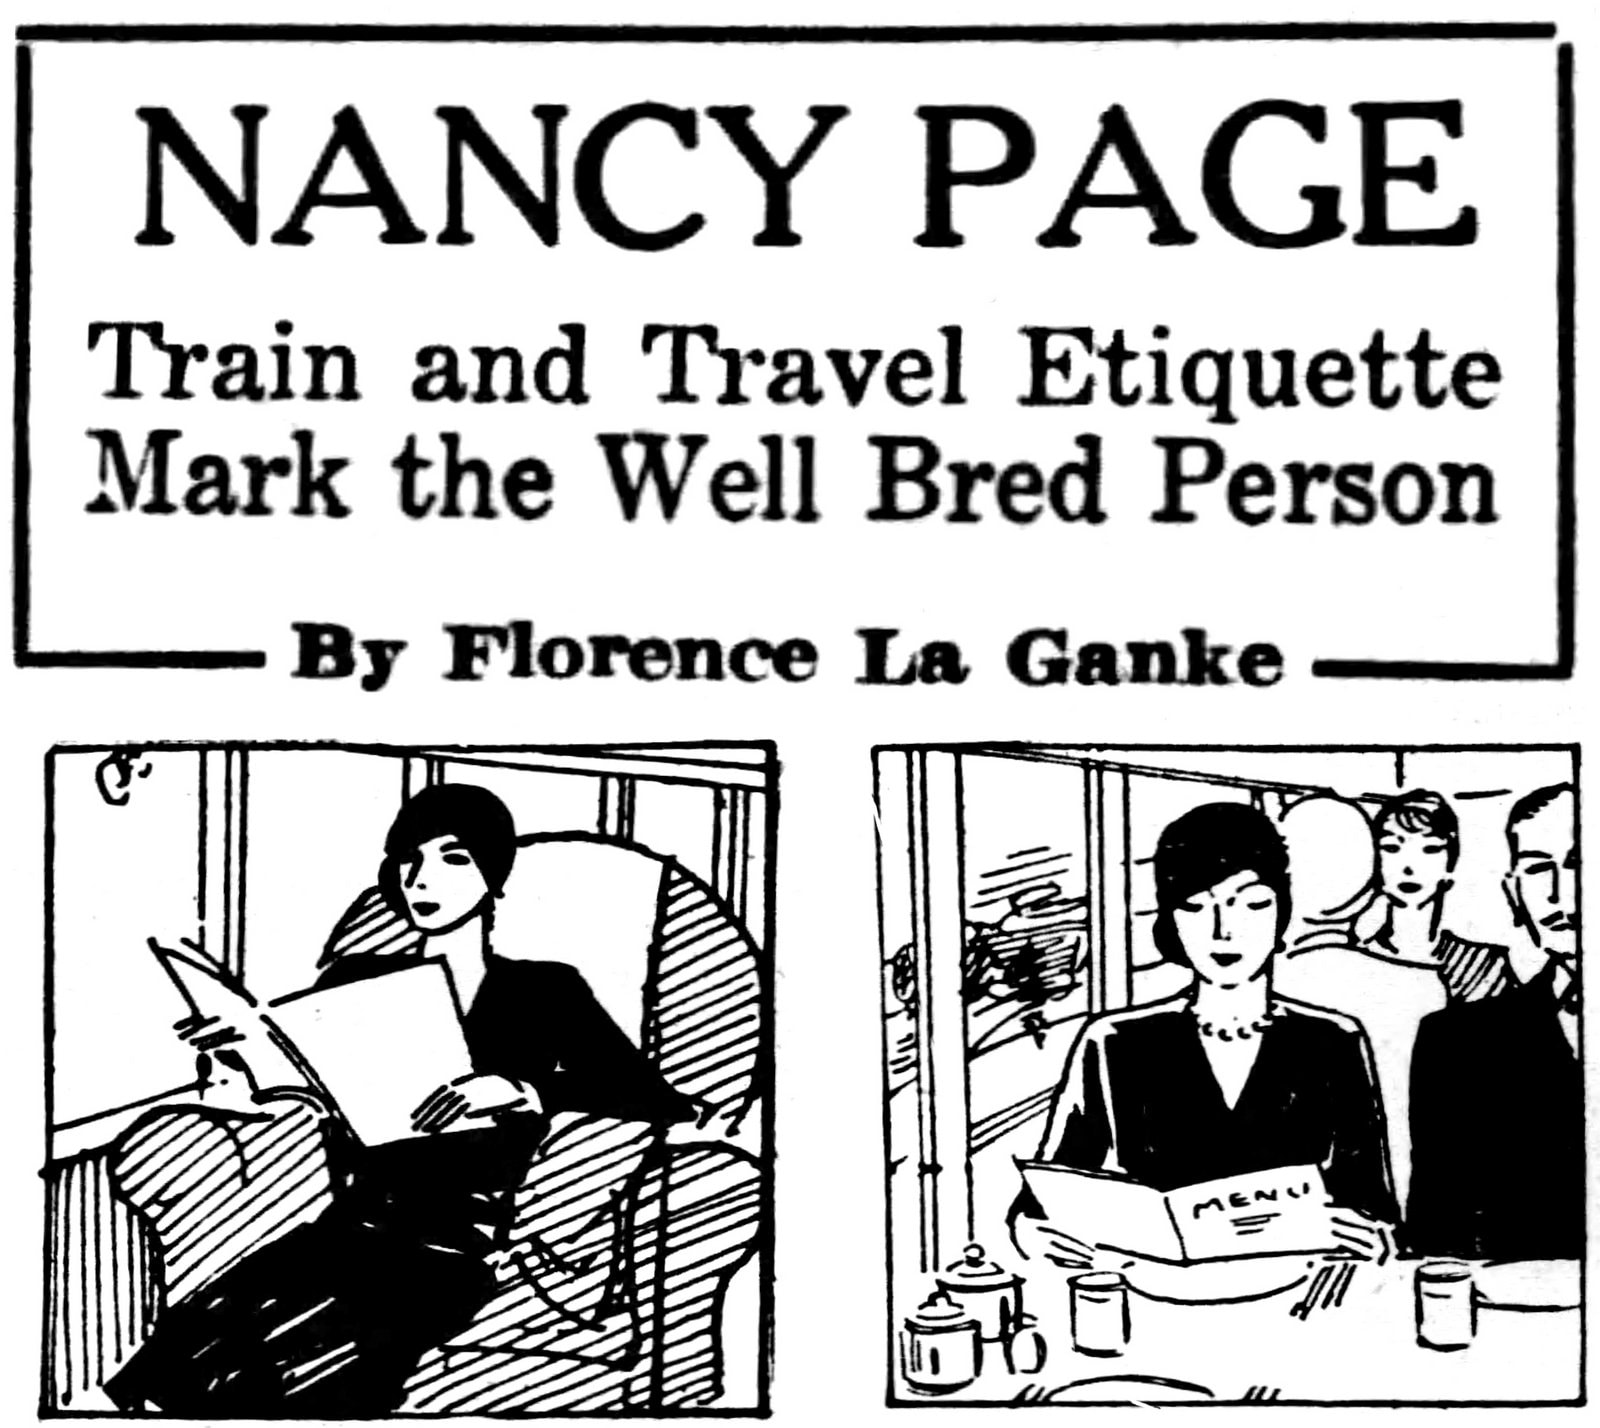 Nancy Page Train and travel etiquette mark the well-bred person (1929)